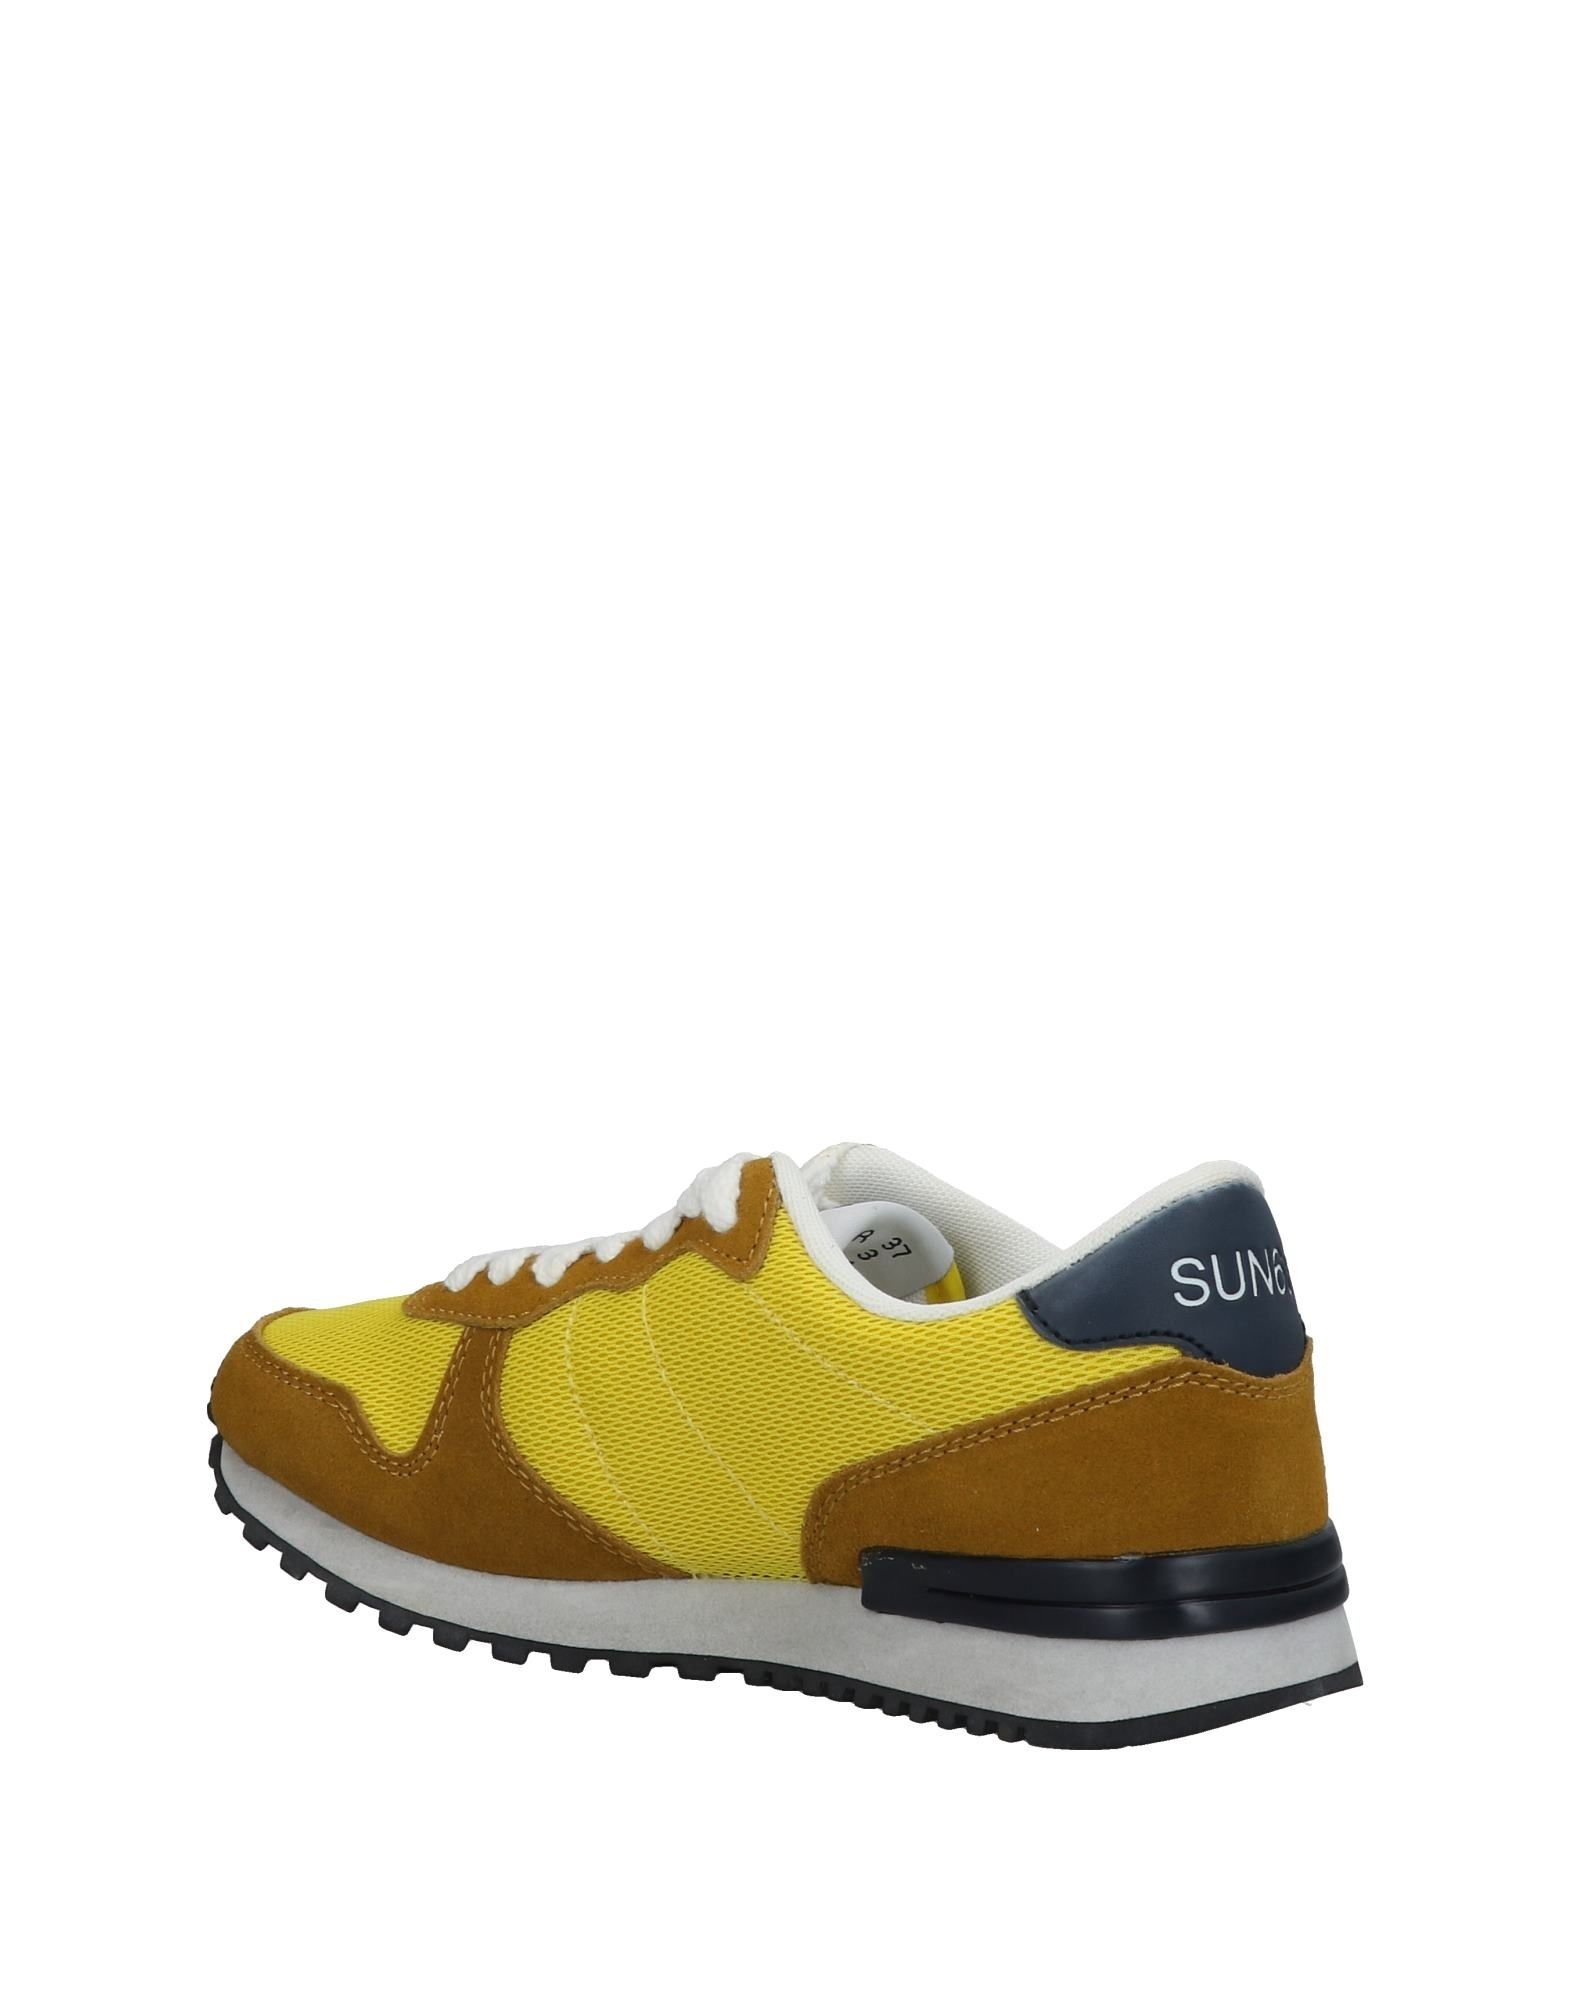 Sun 68 Sneakers Sneakers Sneakers - Women Sun 68 Sneakers online on  Canada - 11432791WL 37043c